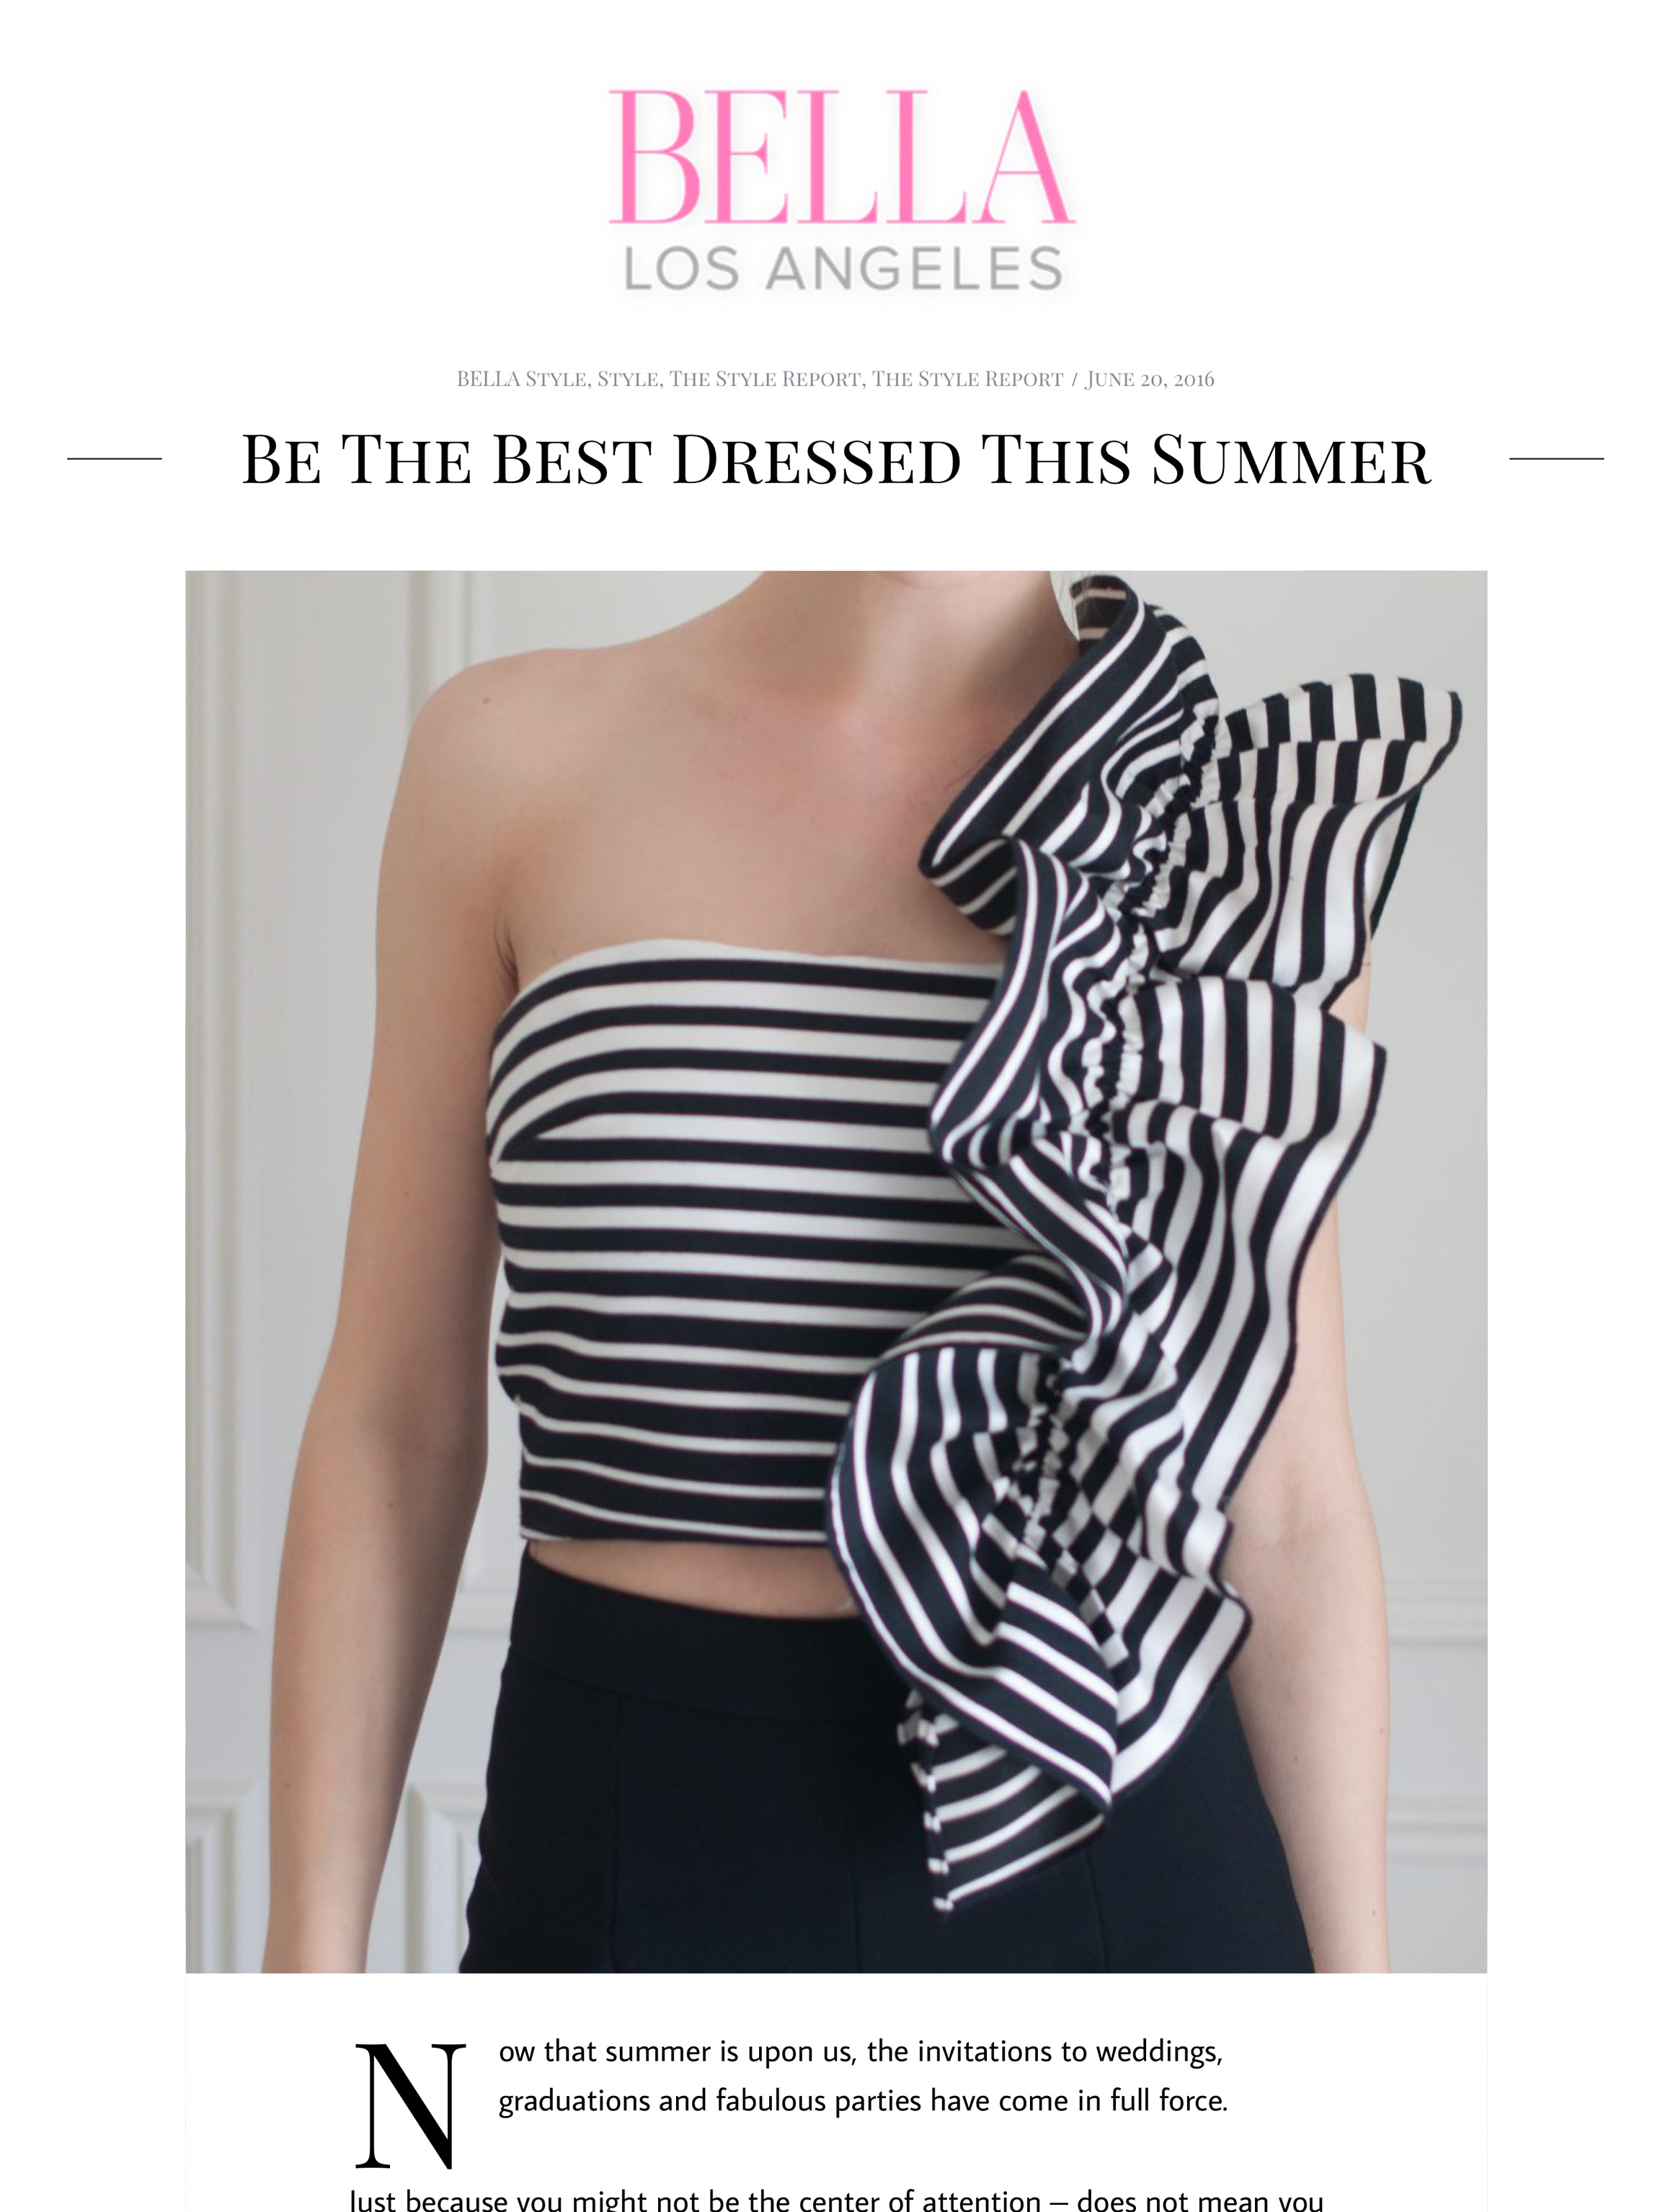 Bella LA - Be The Best Dressed This Summer